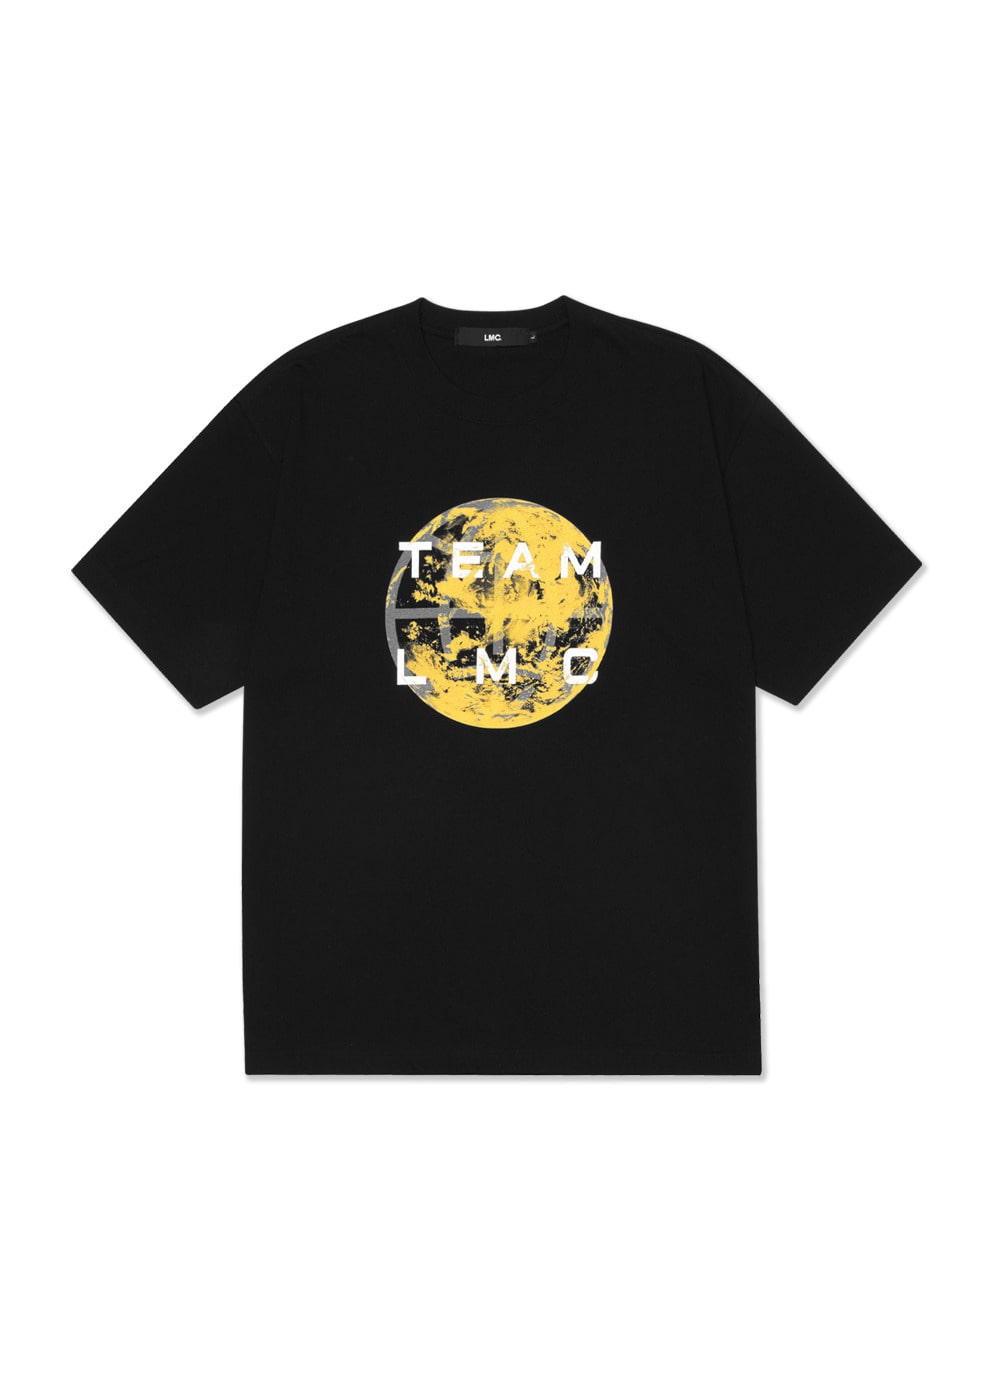 LMC 1989 GREEN TOUR TEE black